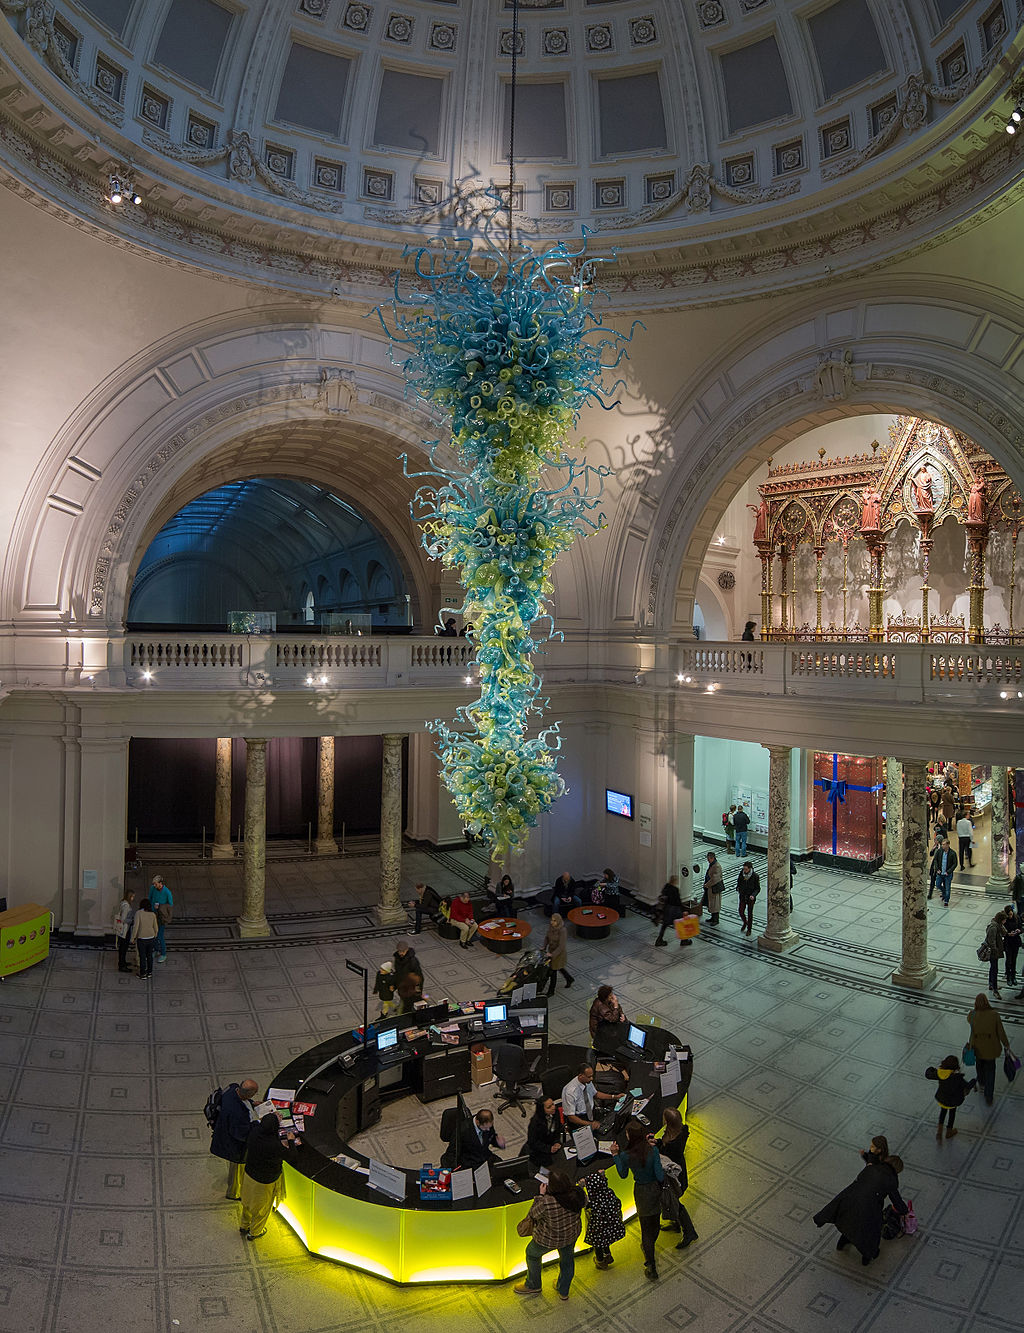 1024px-V&A_Museum_Foyer,_London_-_Oct_2012